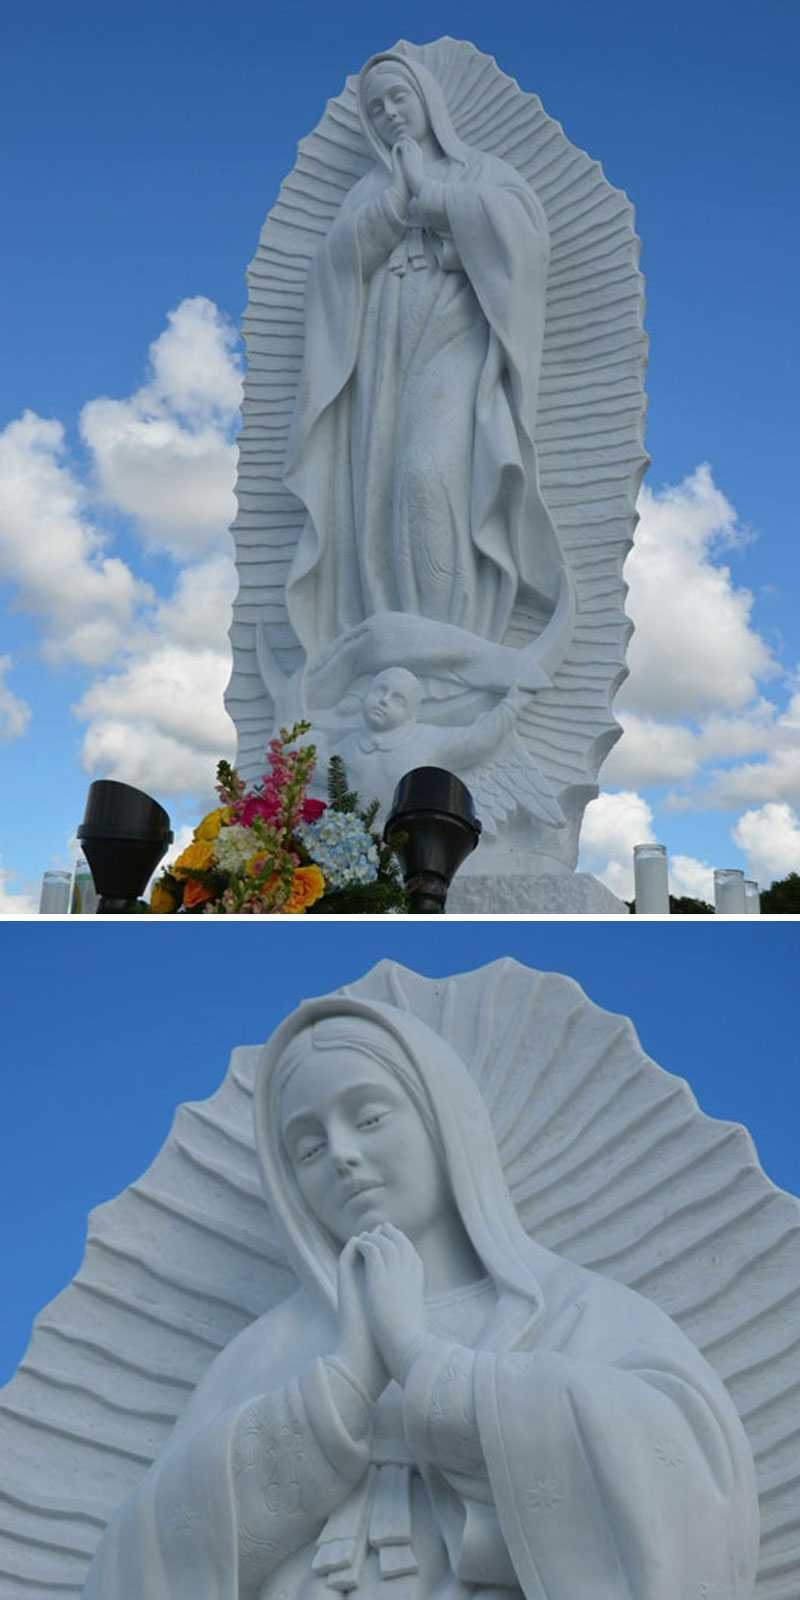 Our-Lady-of-Guadalupe-marble-statues-for-memorial-garden-at-church-designs for sale